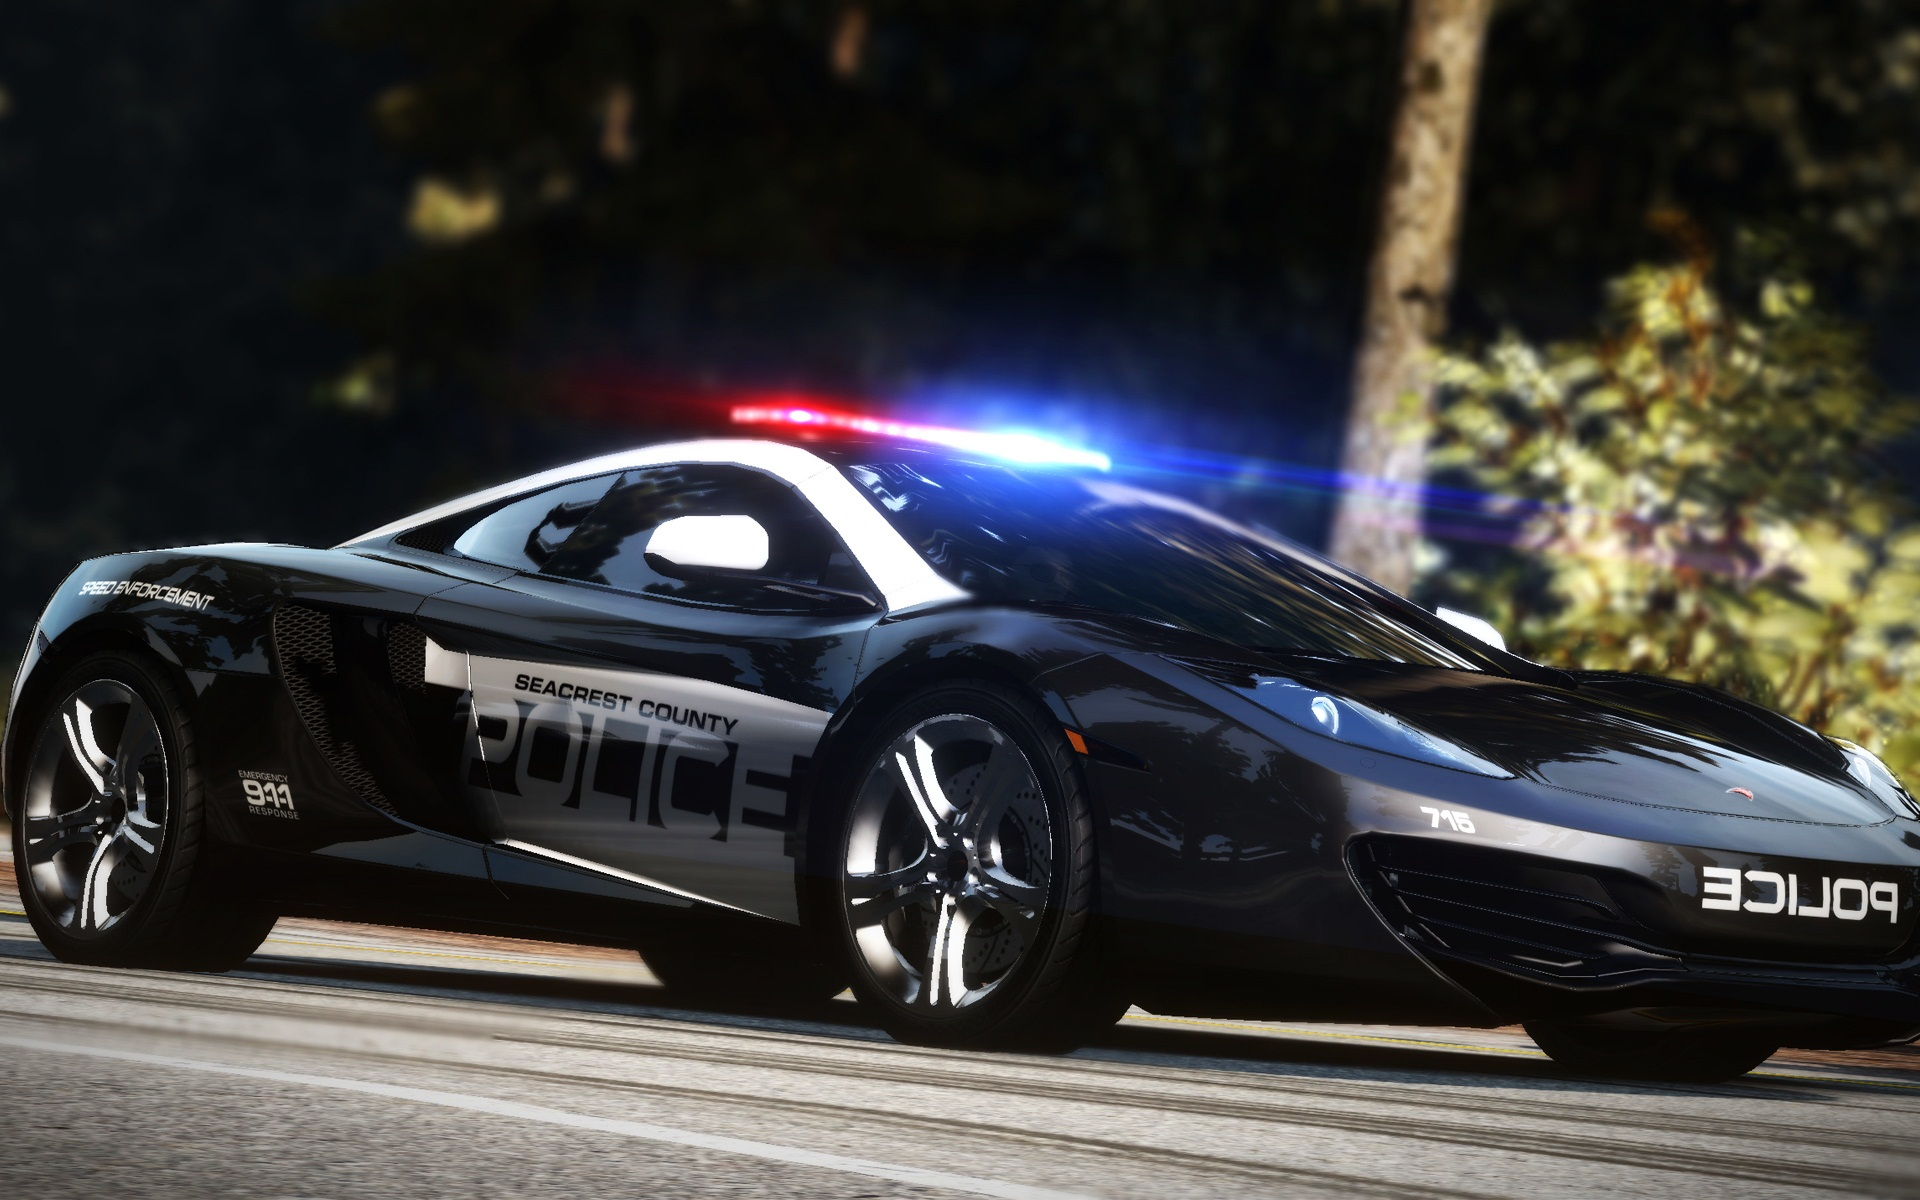 NFS Hot Pursuit Cop Car 643.41 Kb